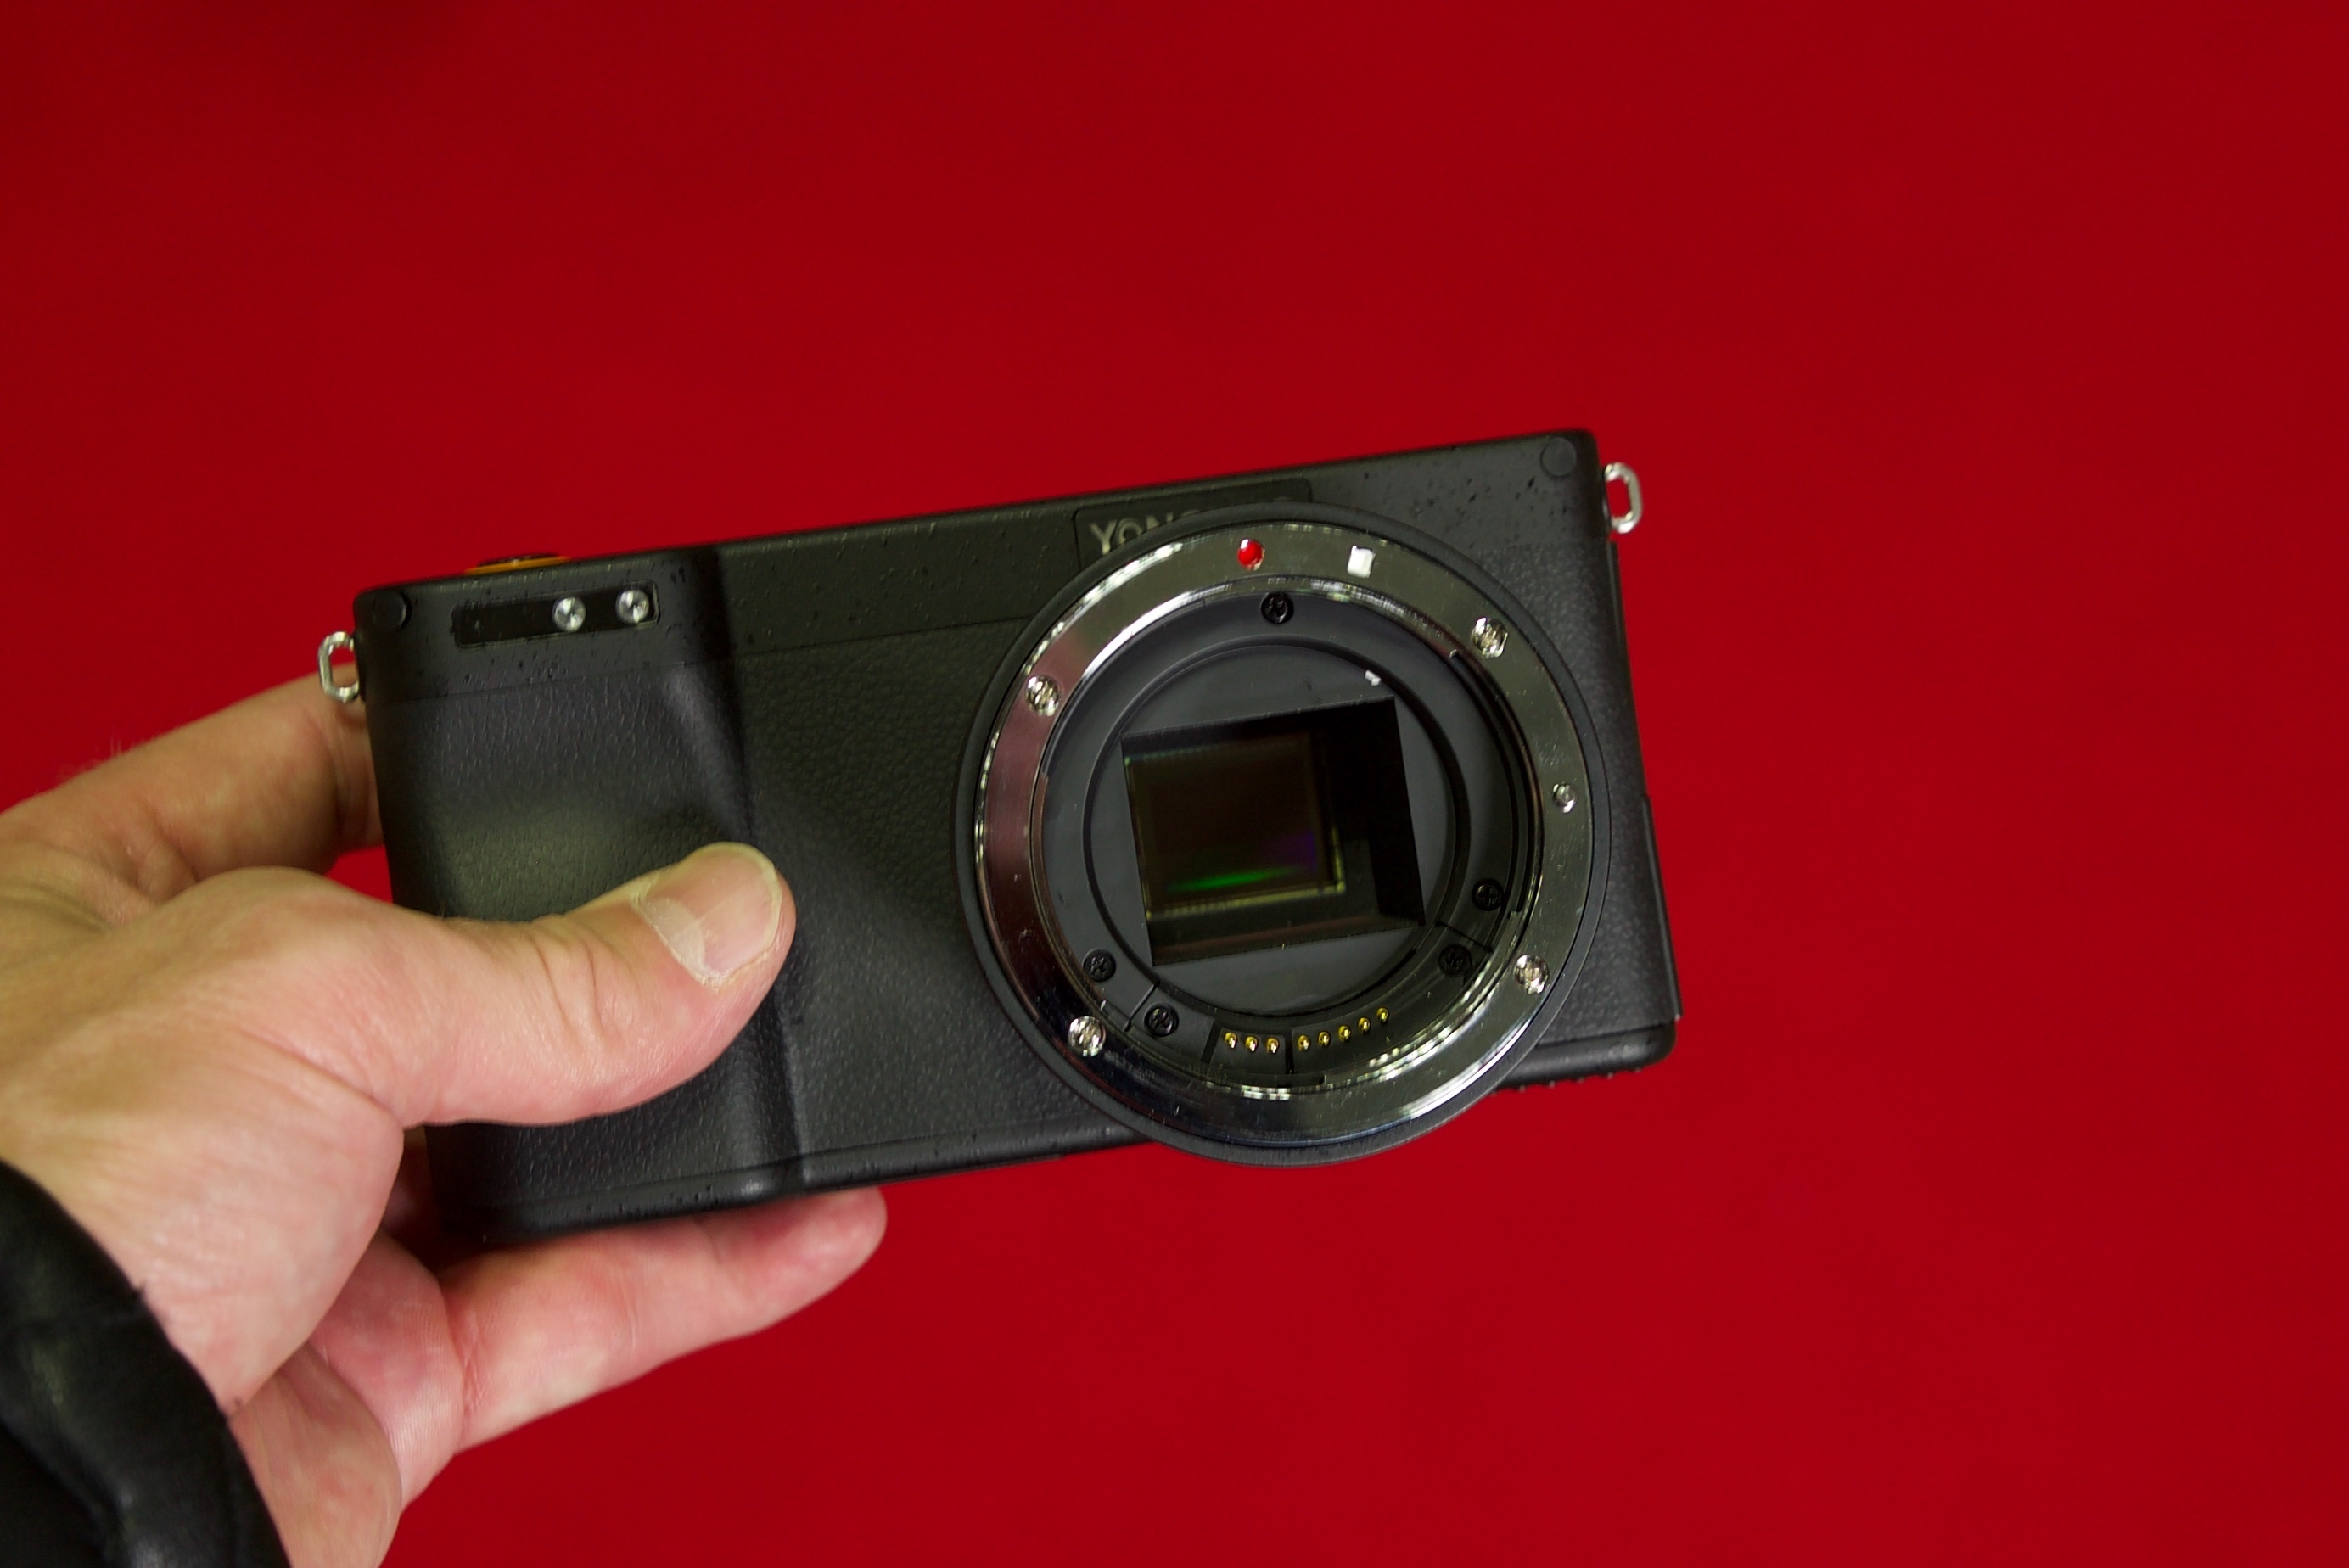 Yongnuo YN450 Android-powered mirrorless camera CP+ 2019